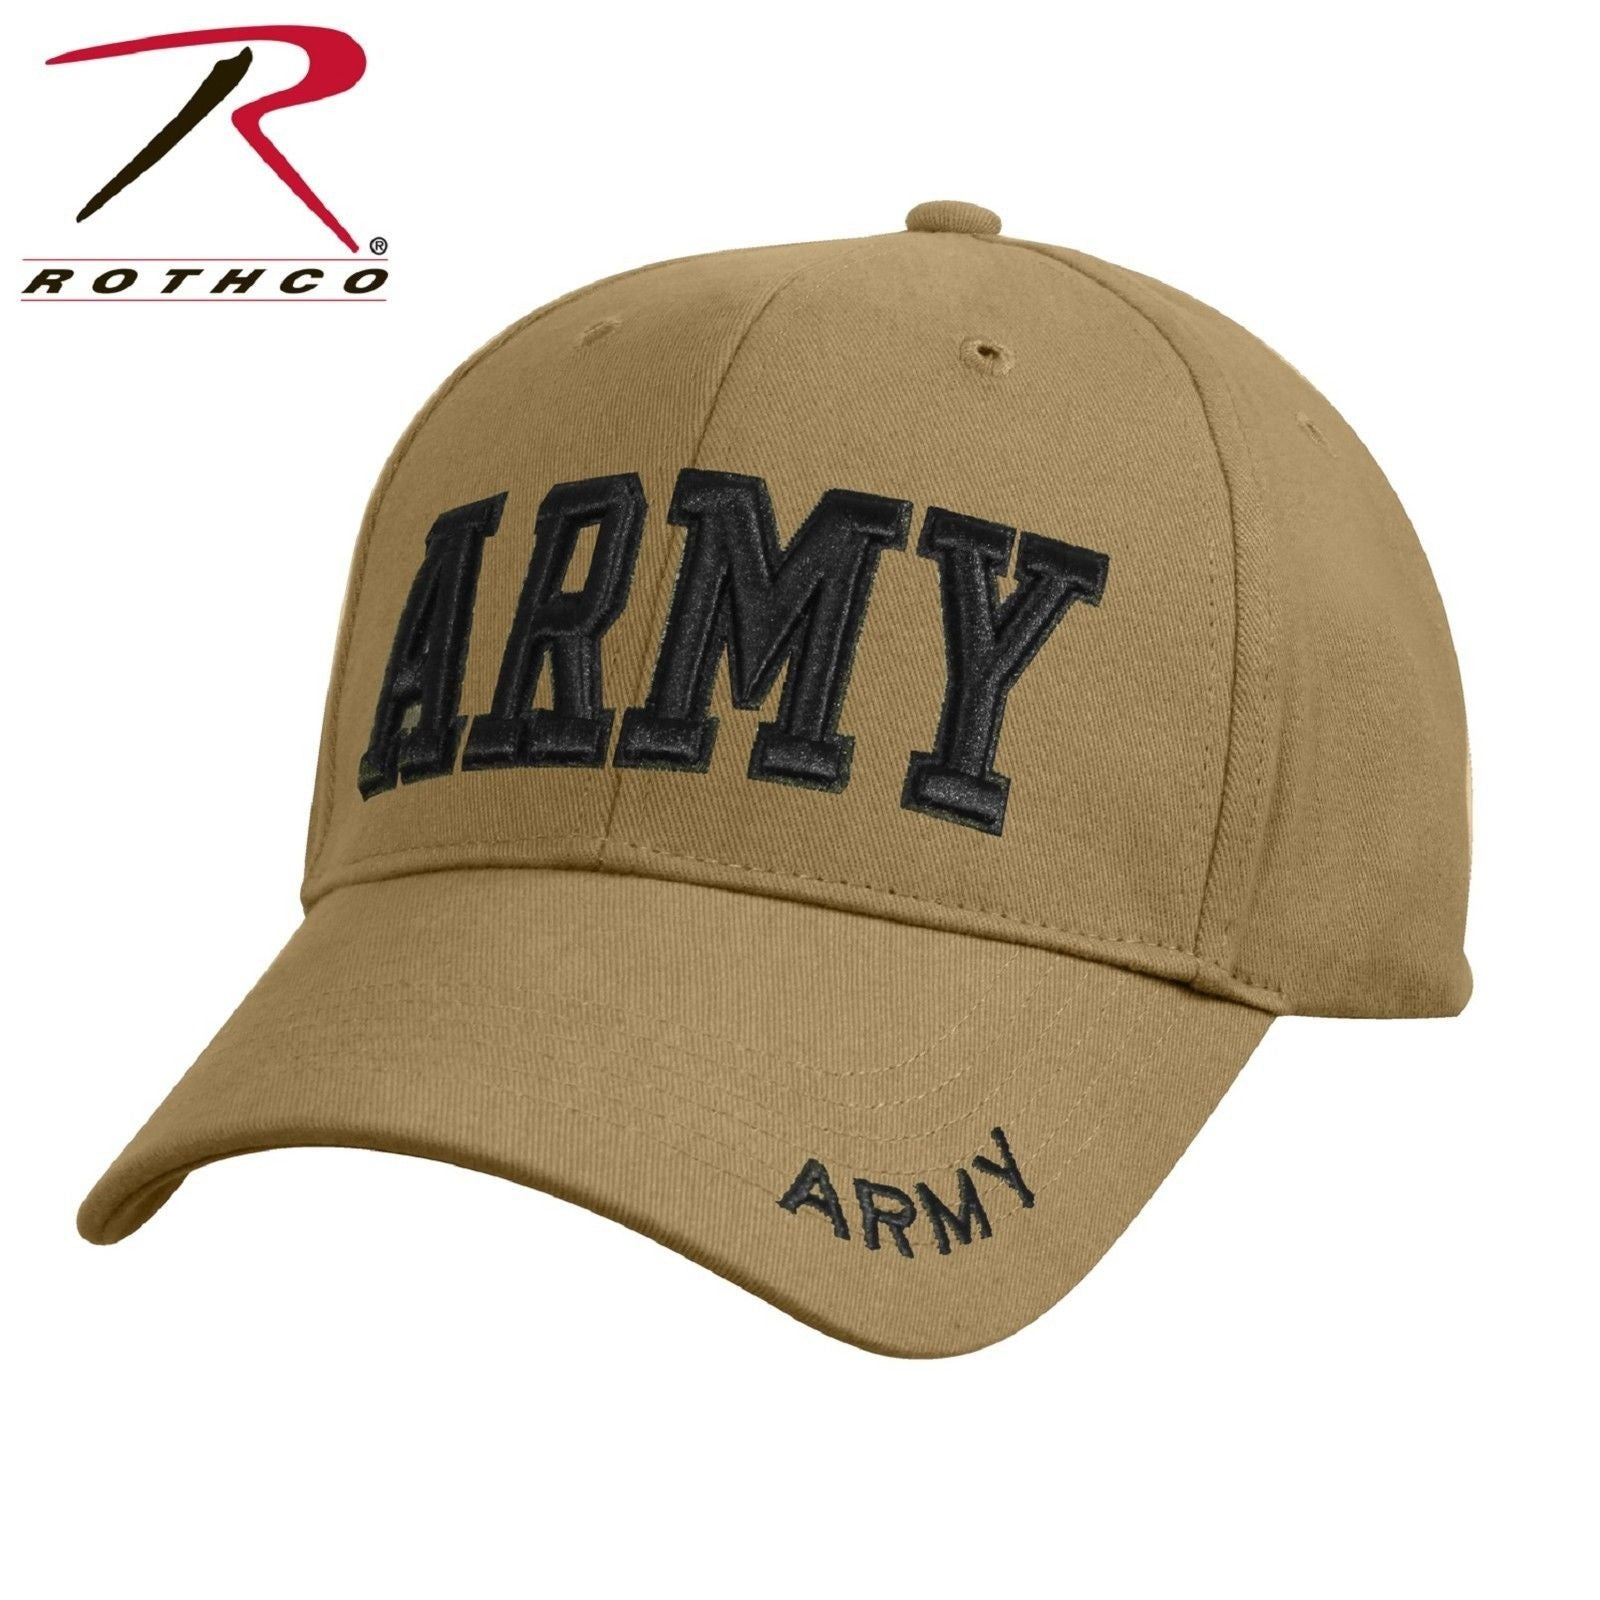 Coyote Brown Deluxe Low Profile Adjustable ARMY Baseball Cap Strapback Hat 373b09fefee